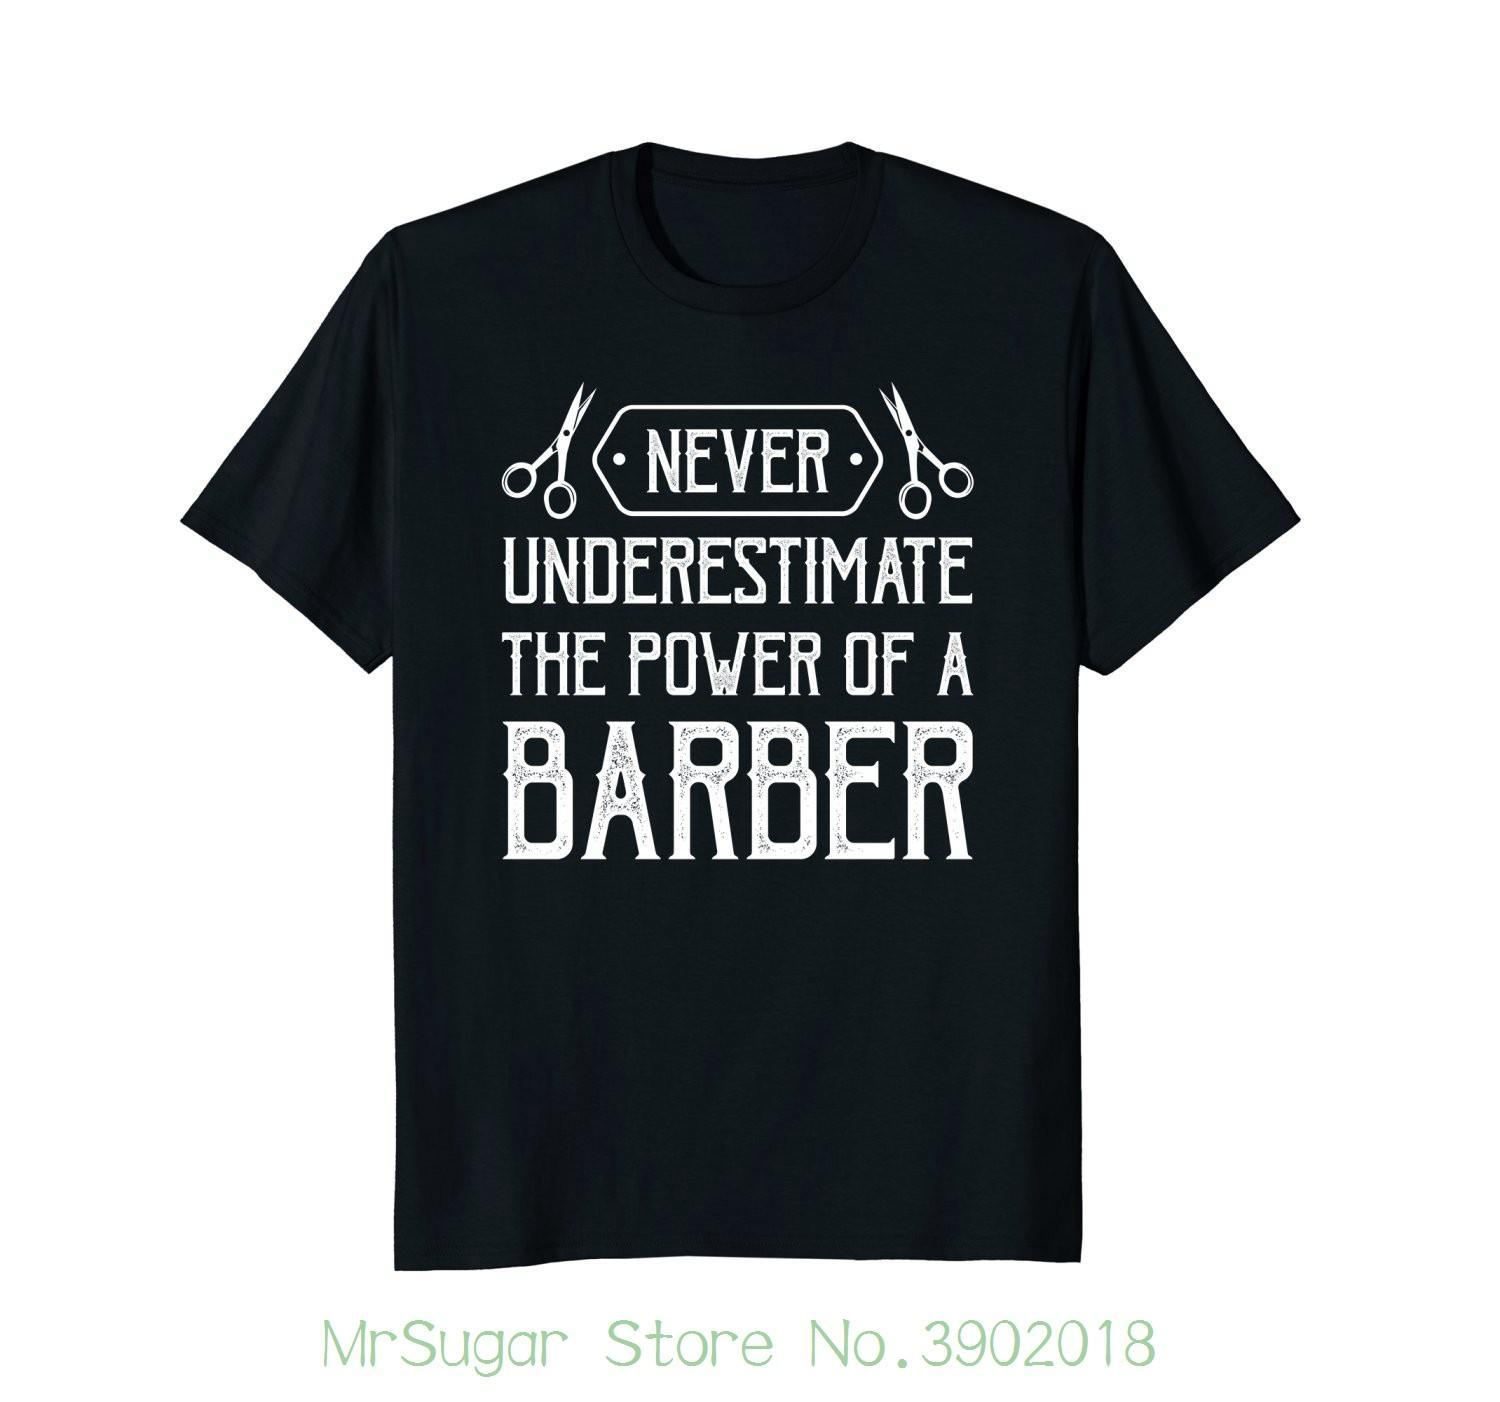 1497c034932e Mens Barber Shirt &Quot ; Never Underestimate The Power Of A Barber&Quot ;  Hot Selling 100 % Cotton Tee Shirts T Shirts Best Best Funny Shirts From  Jie70, ...